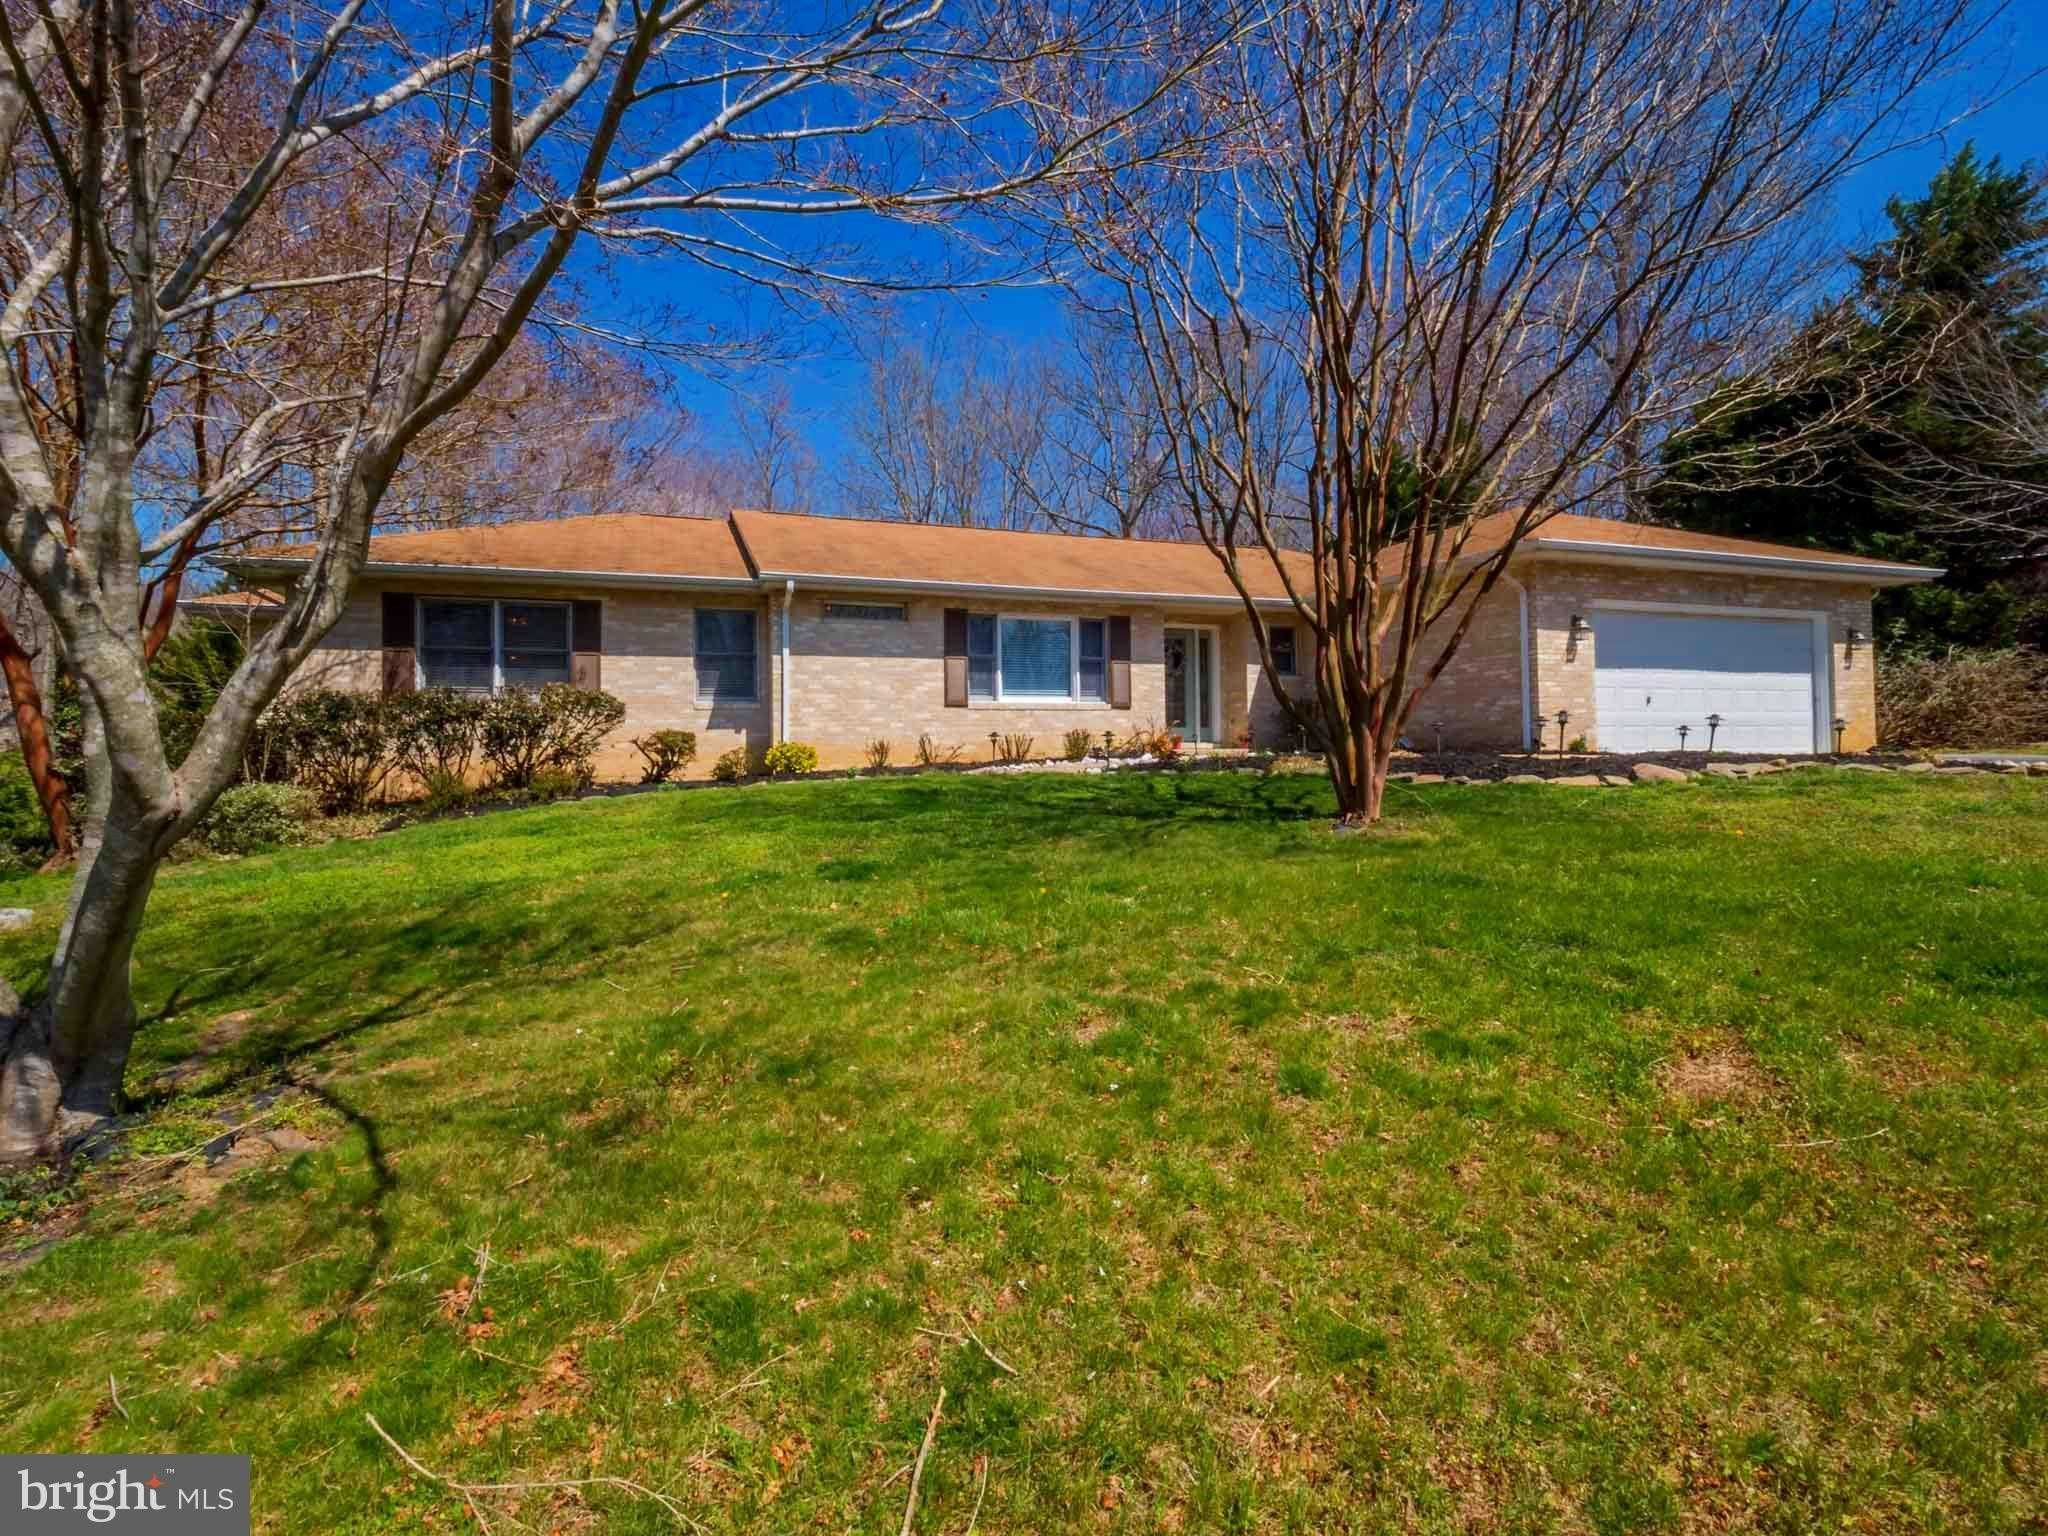 3670 Samanthas Way Huntingtown Md 20639 Mls 1000372532 Beautiful 5 Bedroom Rablber Offers 3966 Sq Ft 3 Full Baths Garnite Cou Gas Fireplace New Carpet Shed